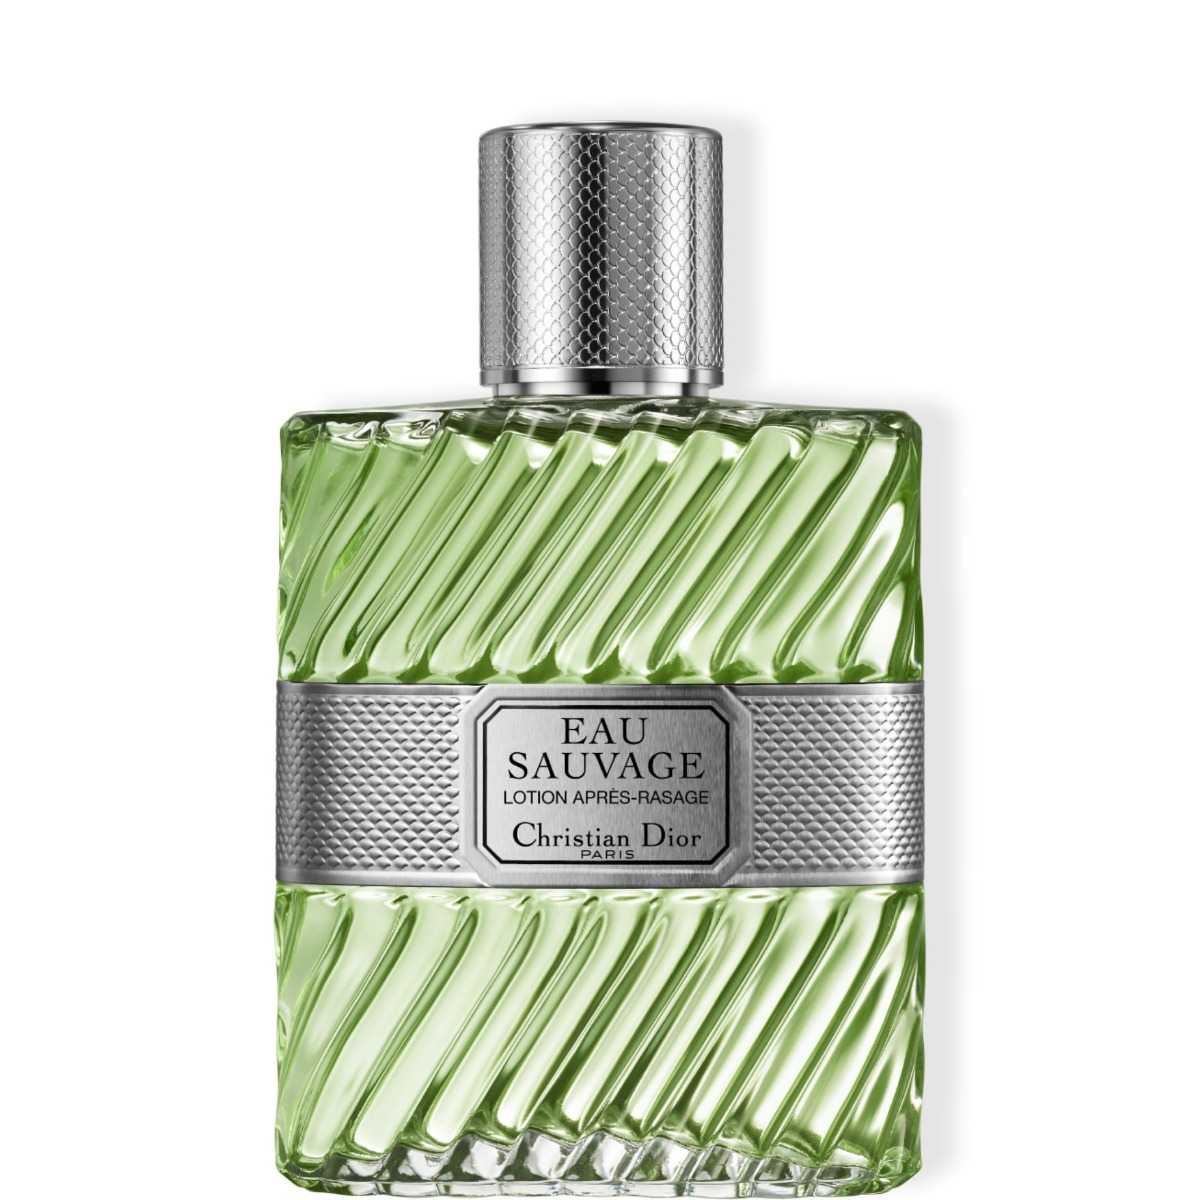 Afbeelding van Christian Dior Eau Sauvage After shave lotion 100 ml